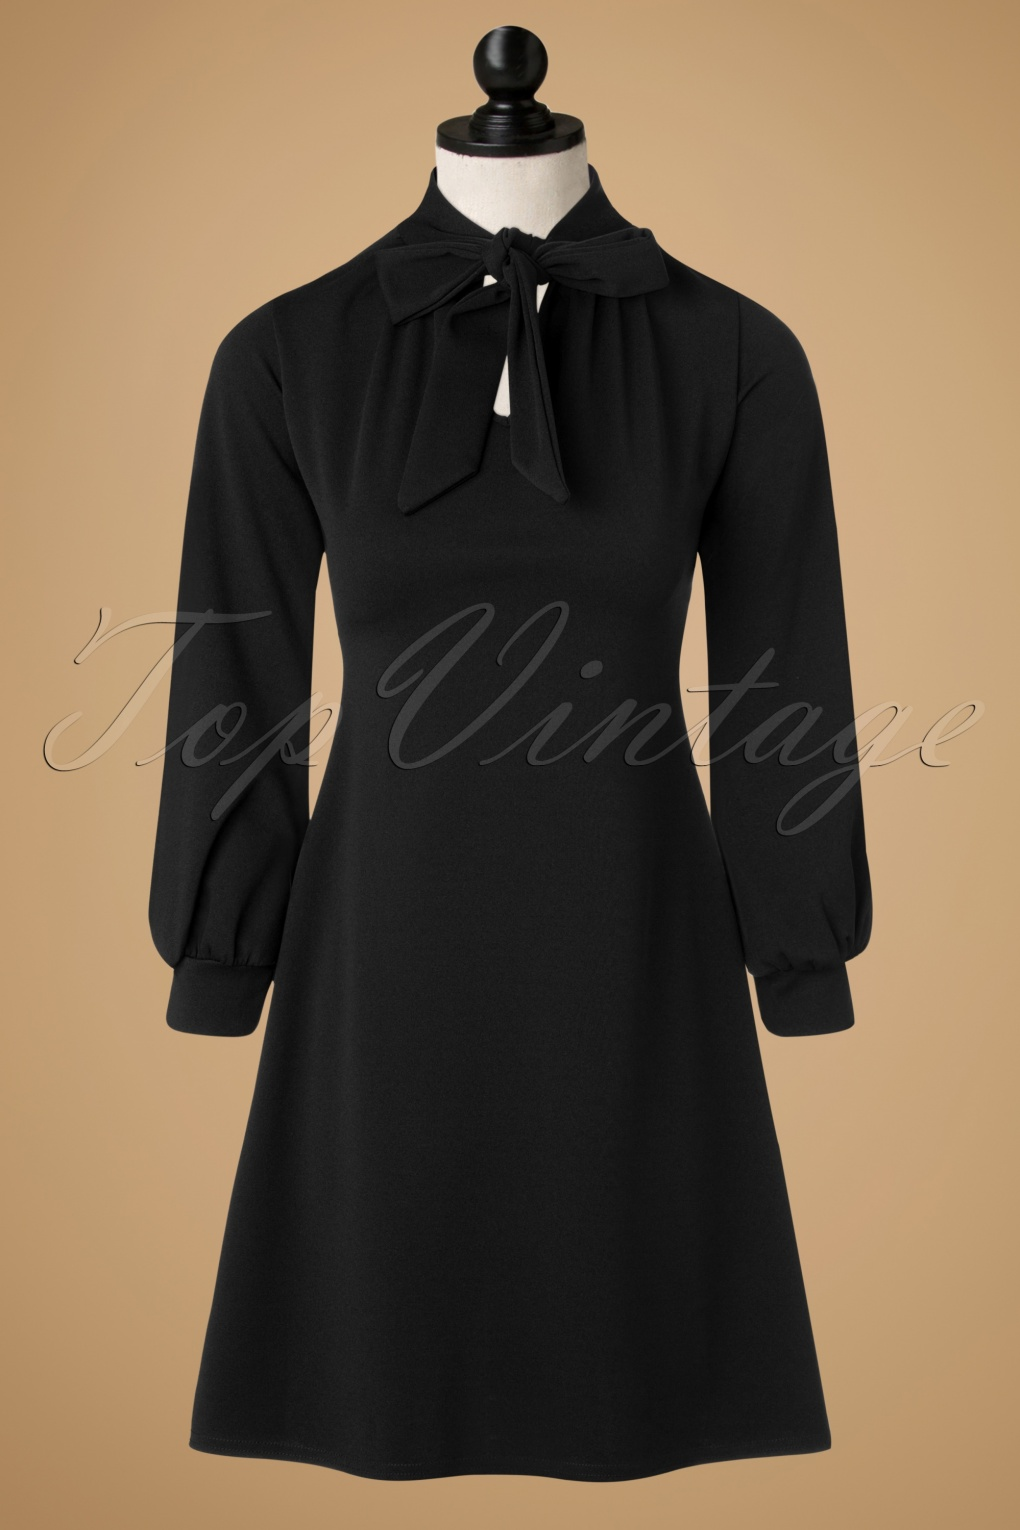 1960s Style Dresses- Retro Inspired Fashion TopVintage Exclusive  60s Marsha A-Line Dress in Black £32.54 AT vintagedancer.com